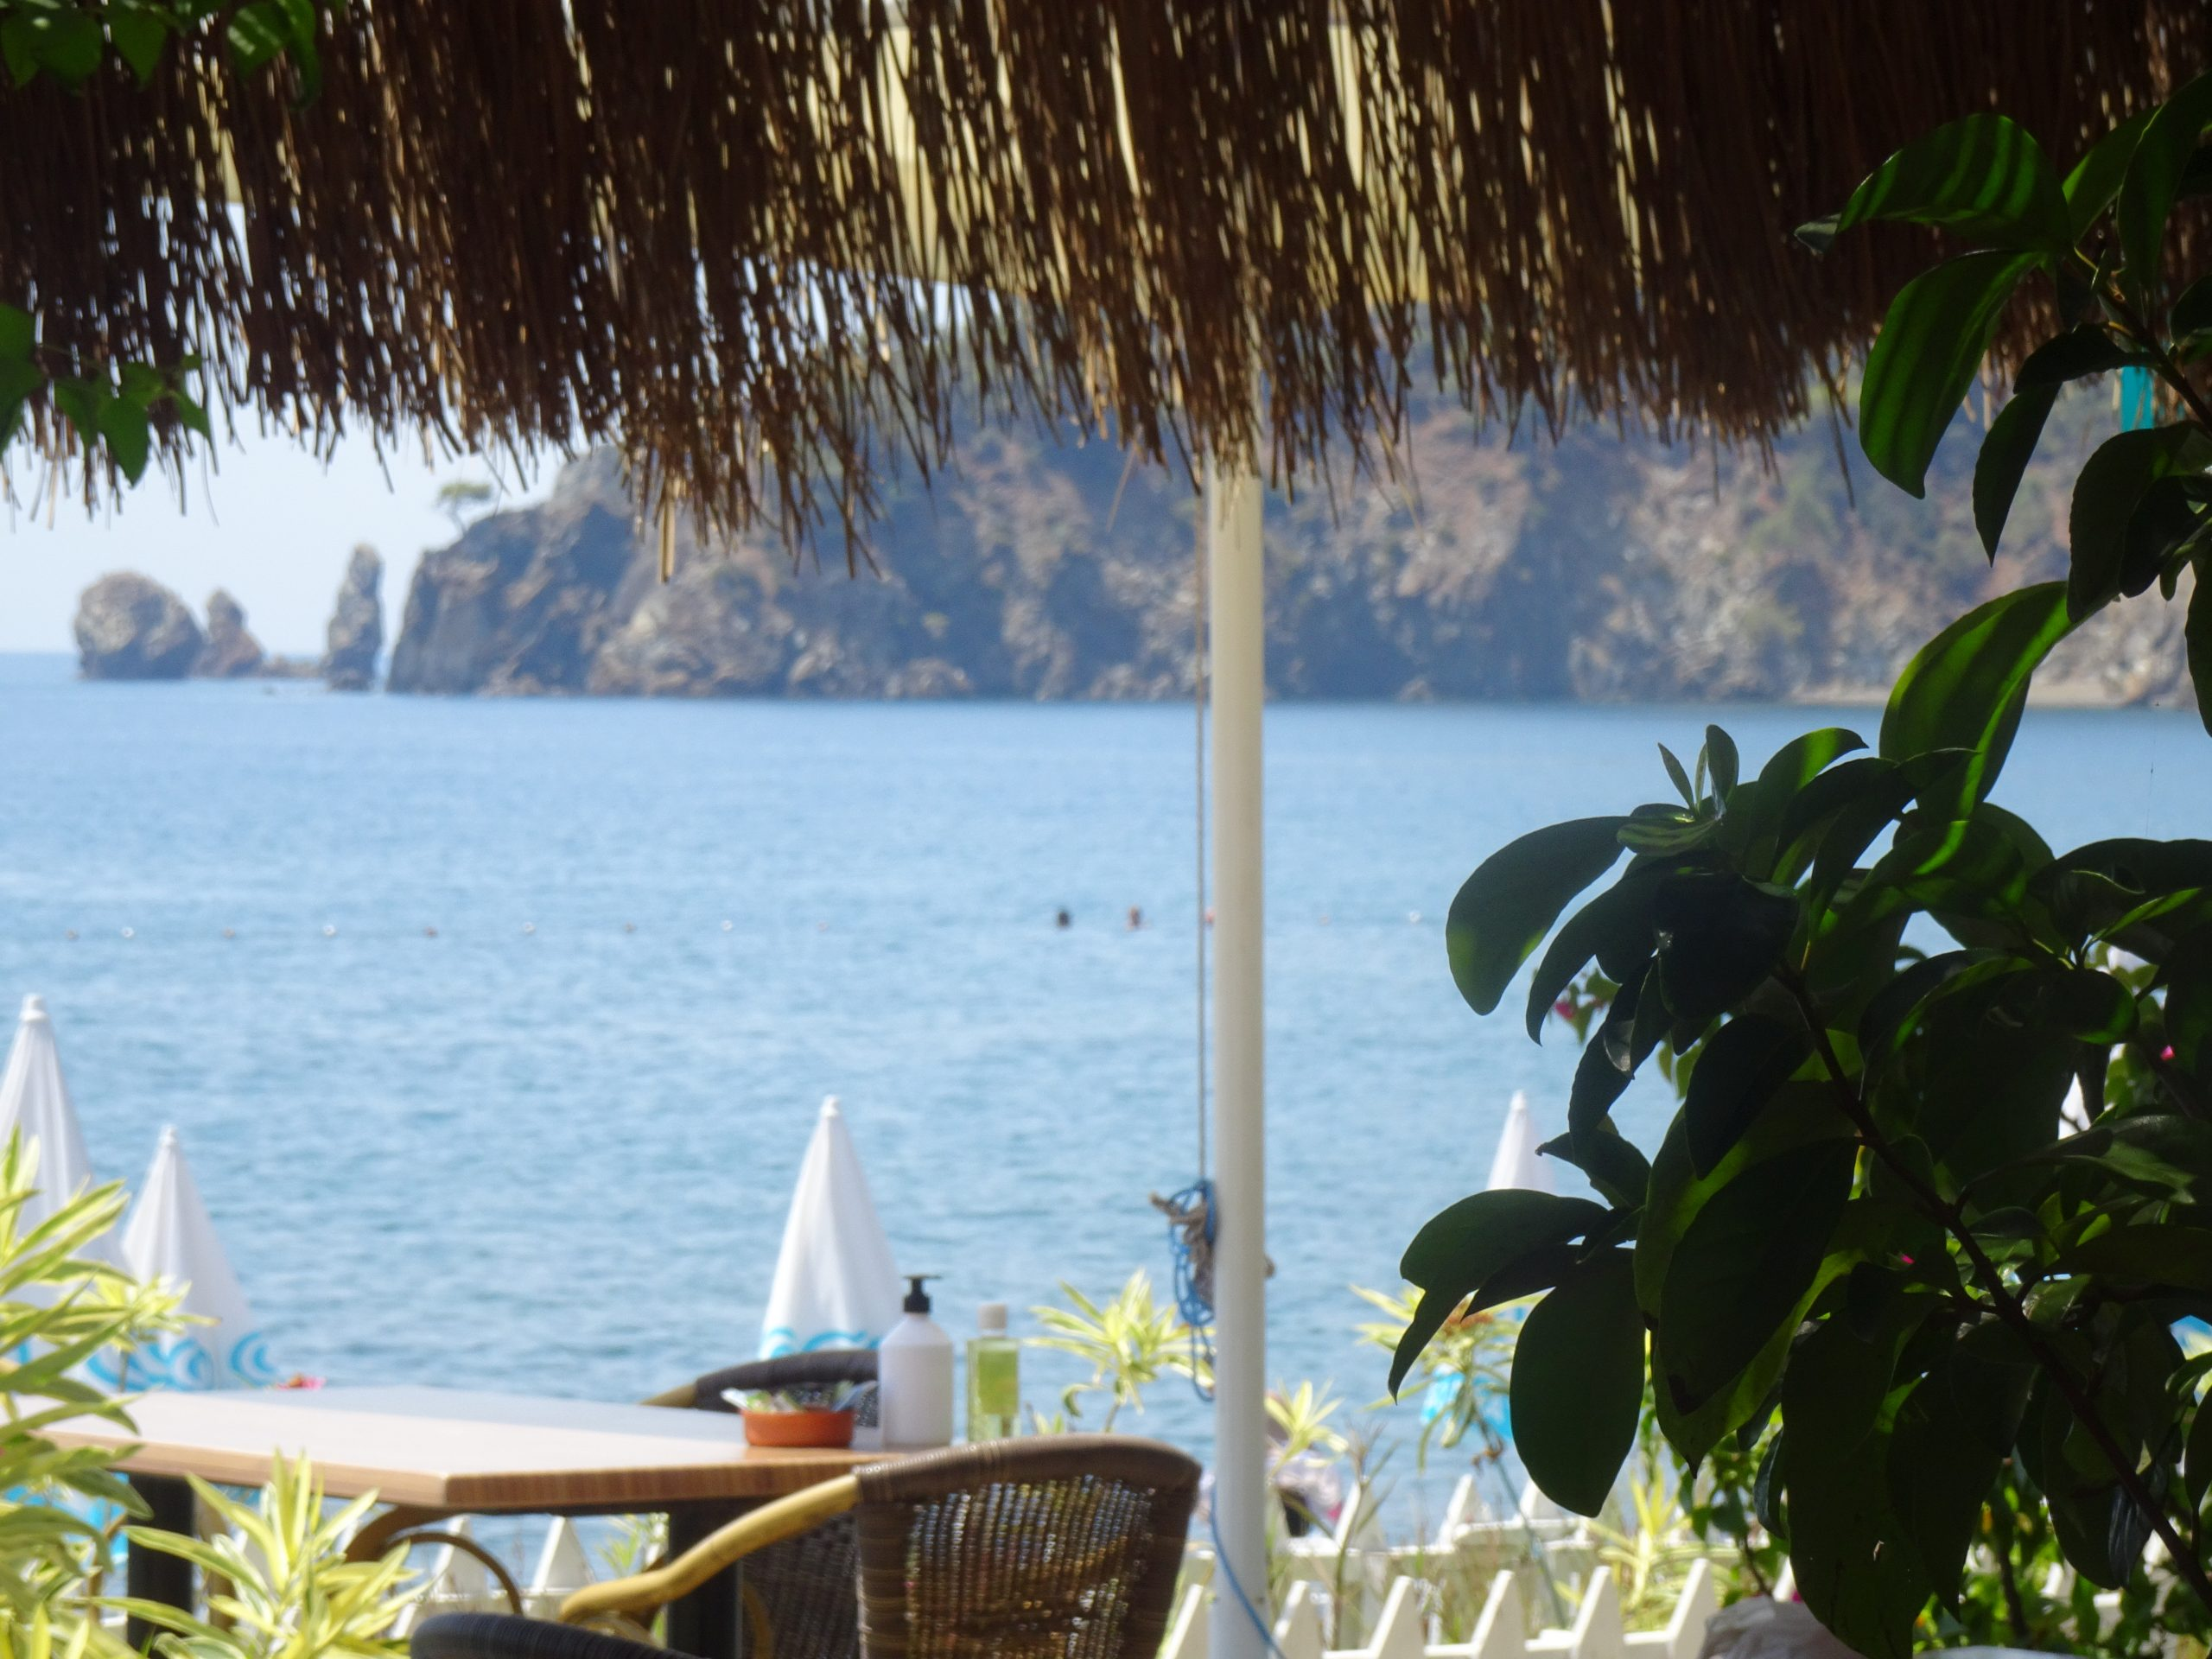 inlice_beach_and_cafe